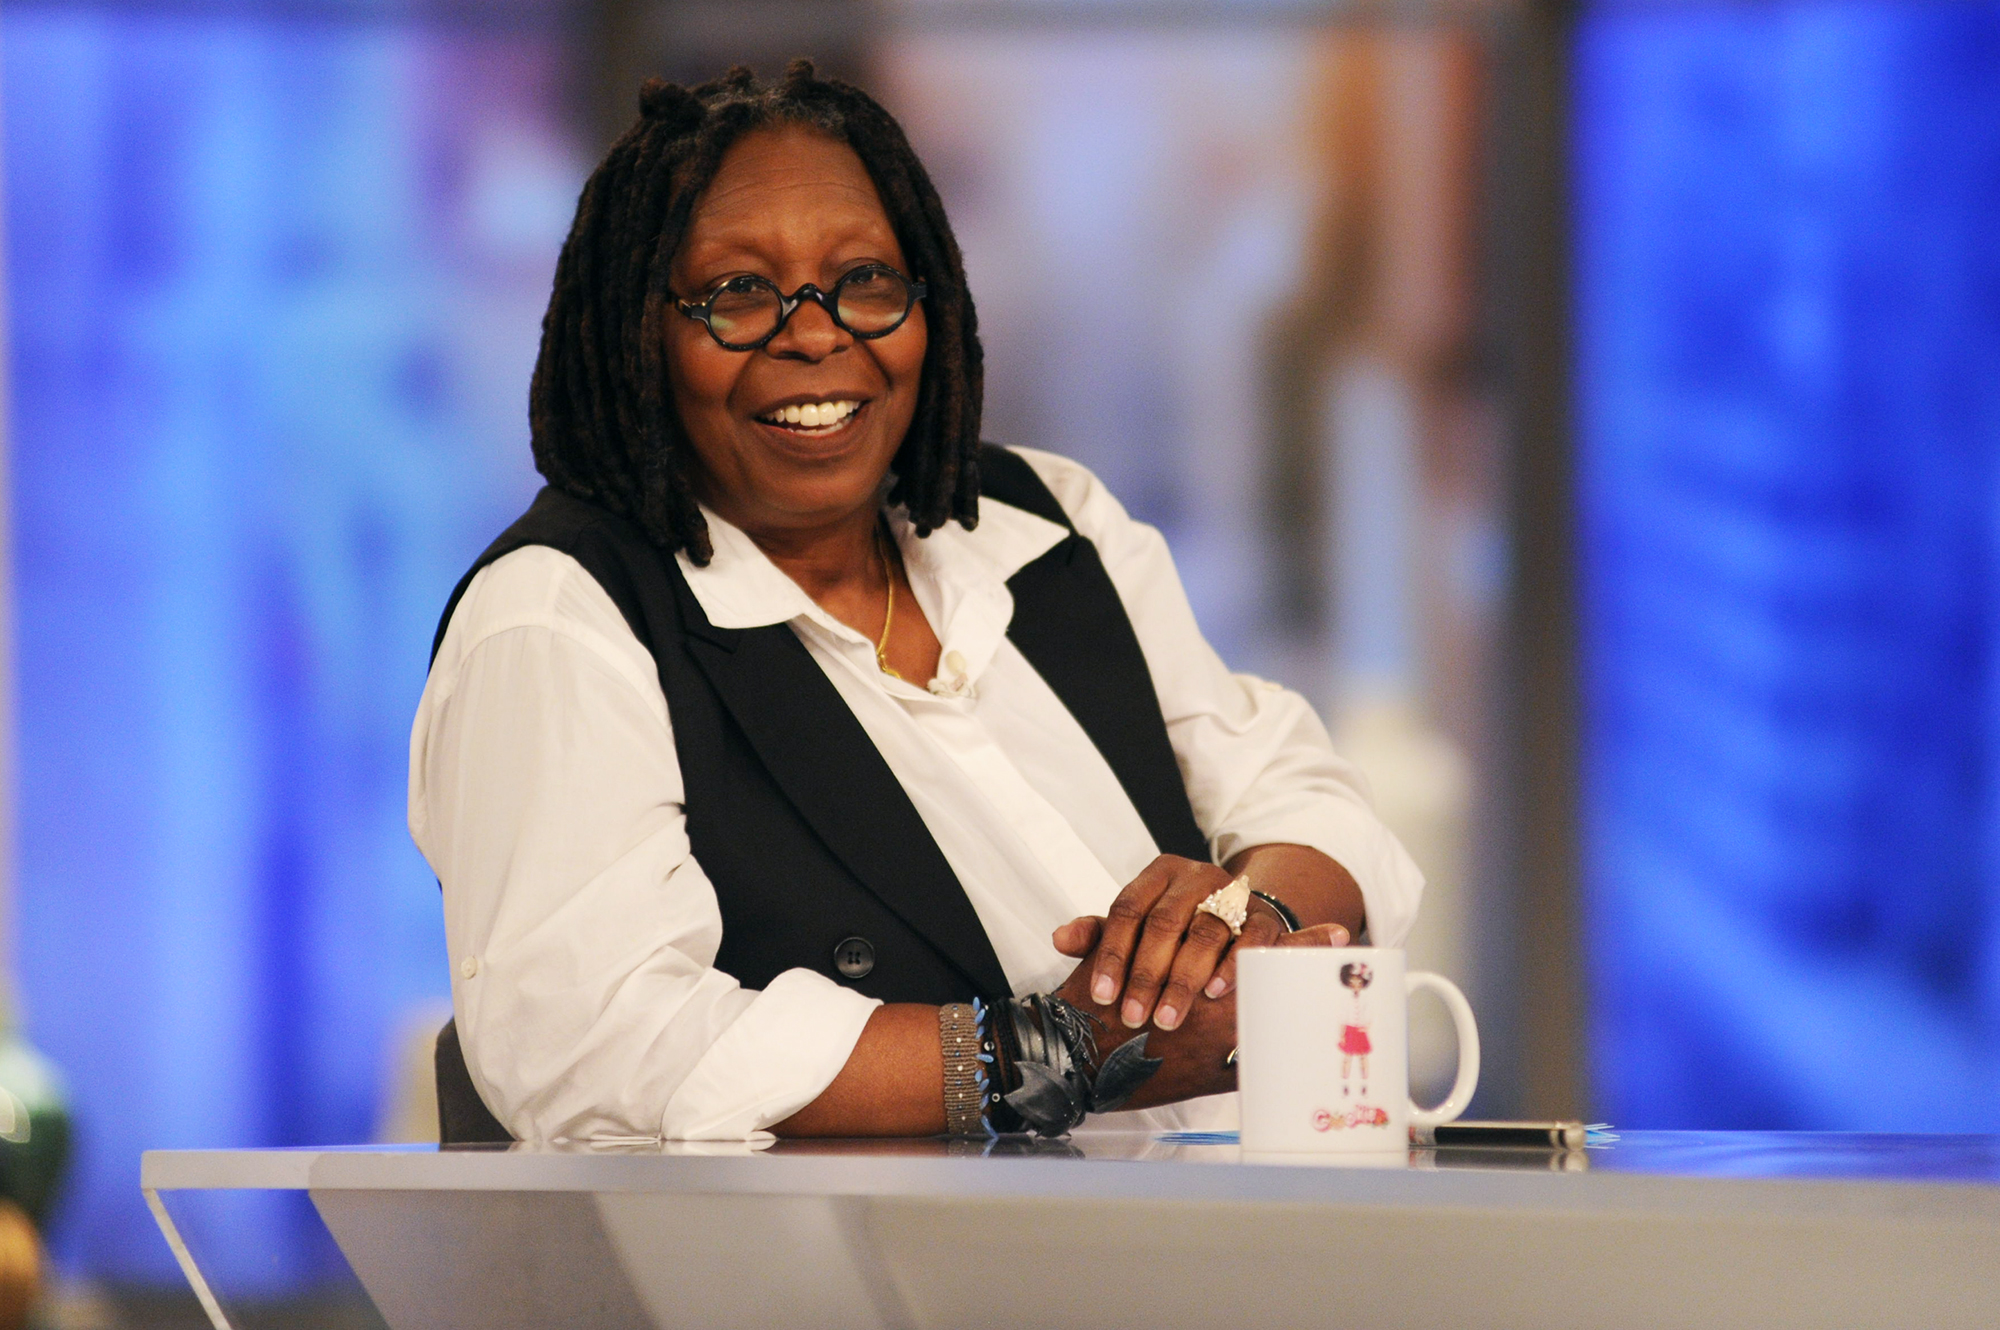 Every 'The View' Cohost Since 1997 Premiere: Joy Behar, Barbara Walters, Whoopi Goldberg and More - The EGOT winner has been a cohost on The View since 2007.